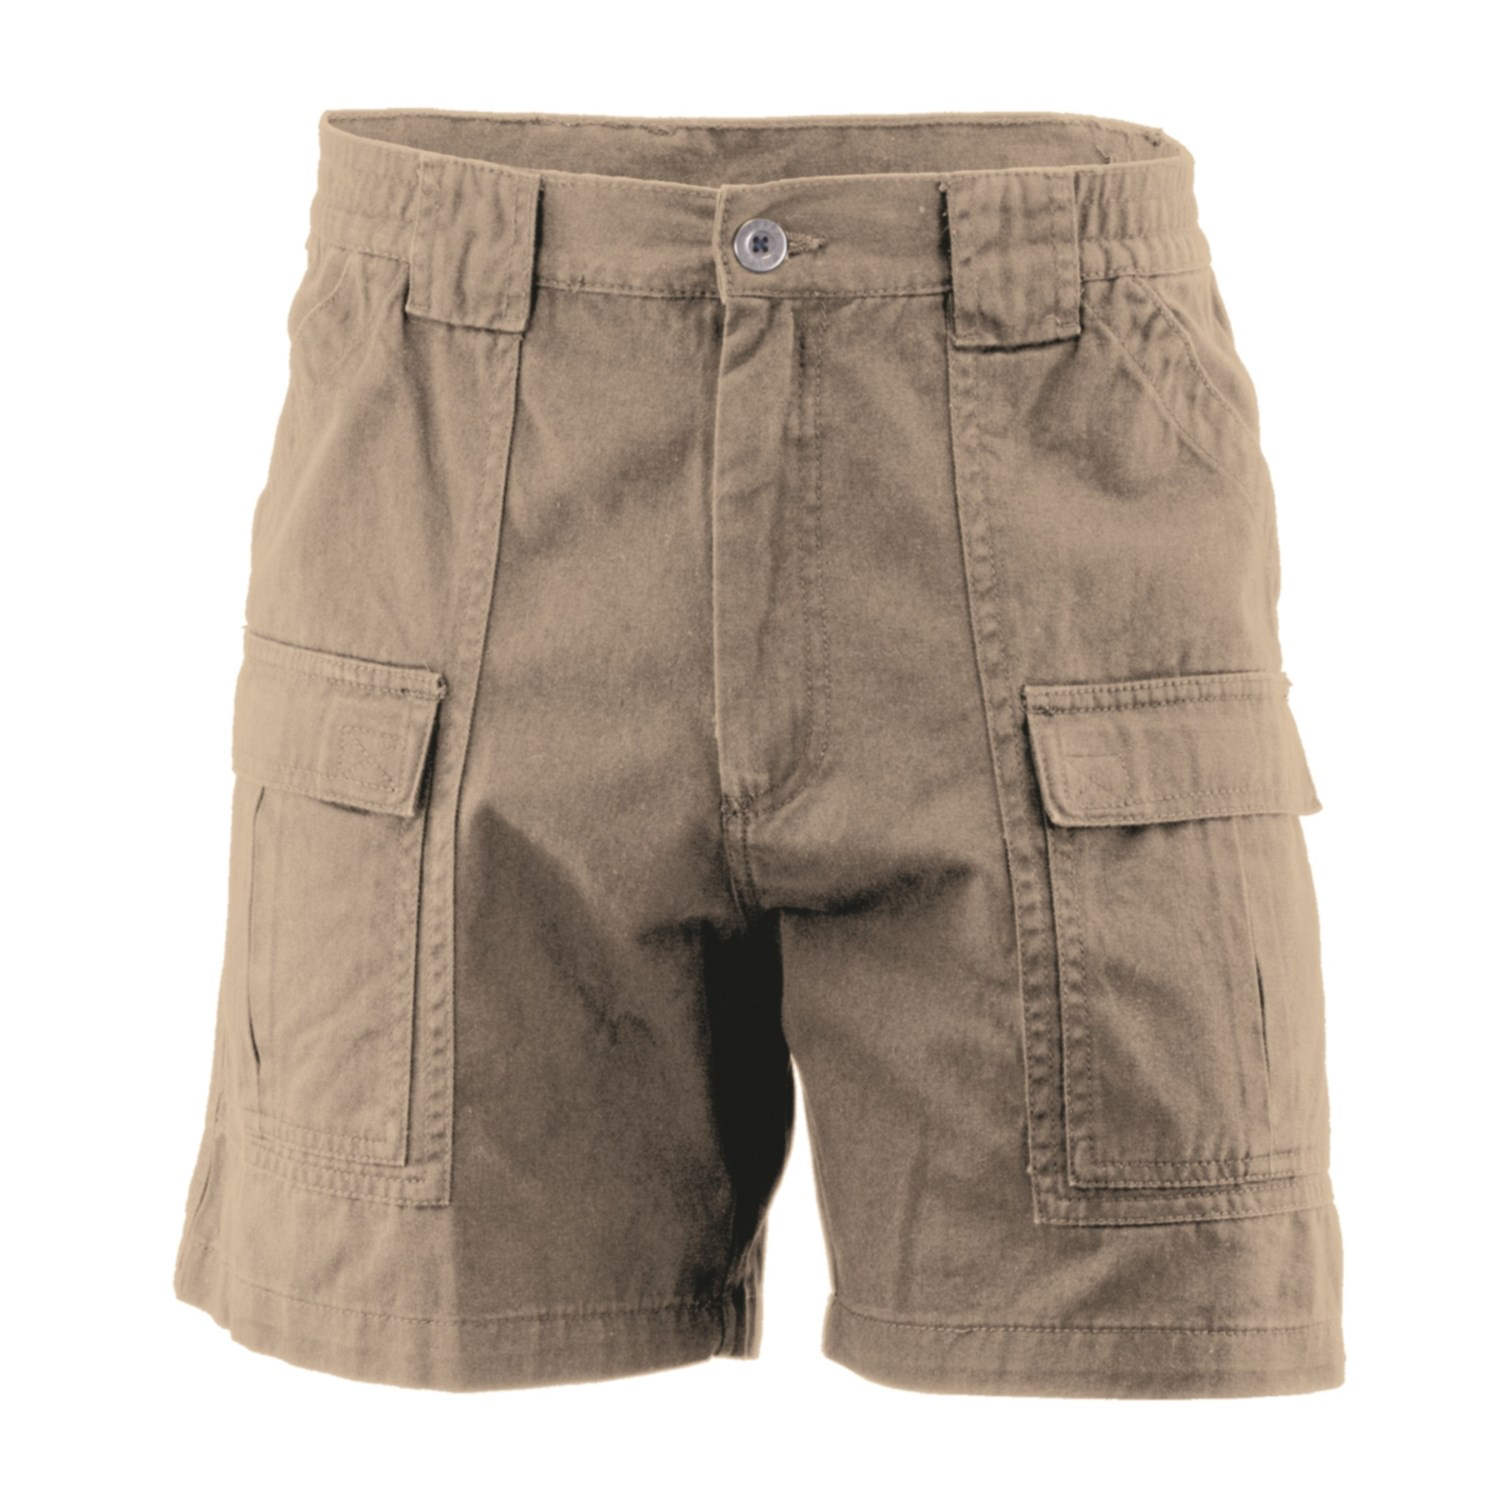 Shop eBay for great deals on % Cotton Cargo Shorts for Men. You'll find new or used products in % Cotton Cargo Shorts for Men on eBay. Free shipping on selected items.